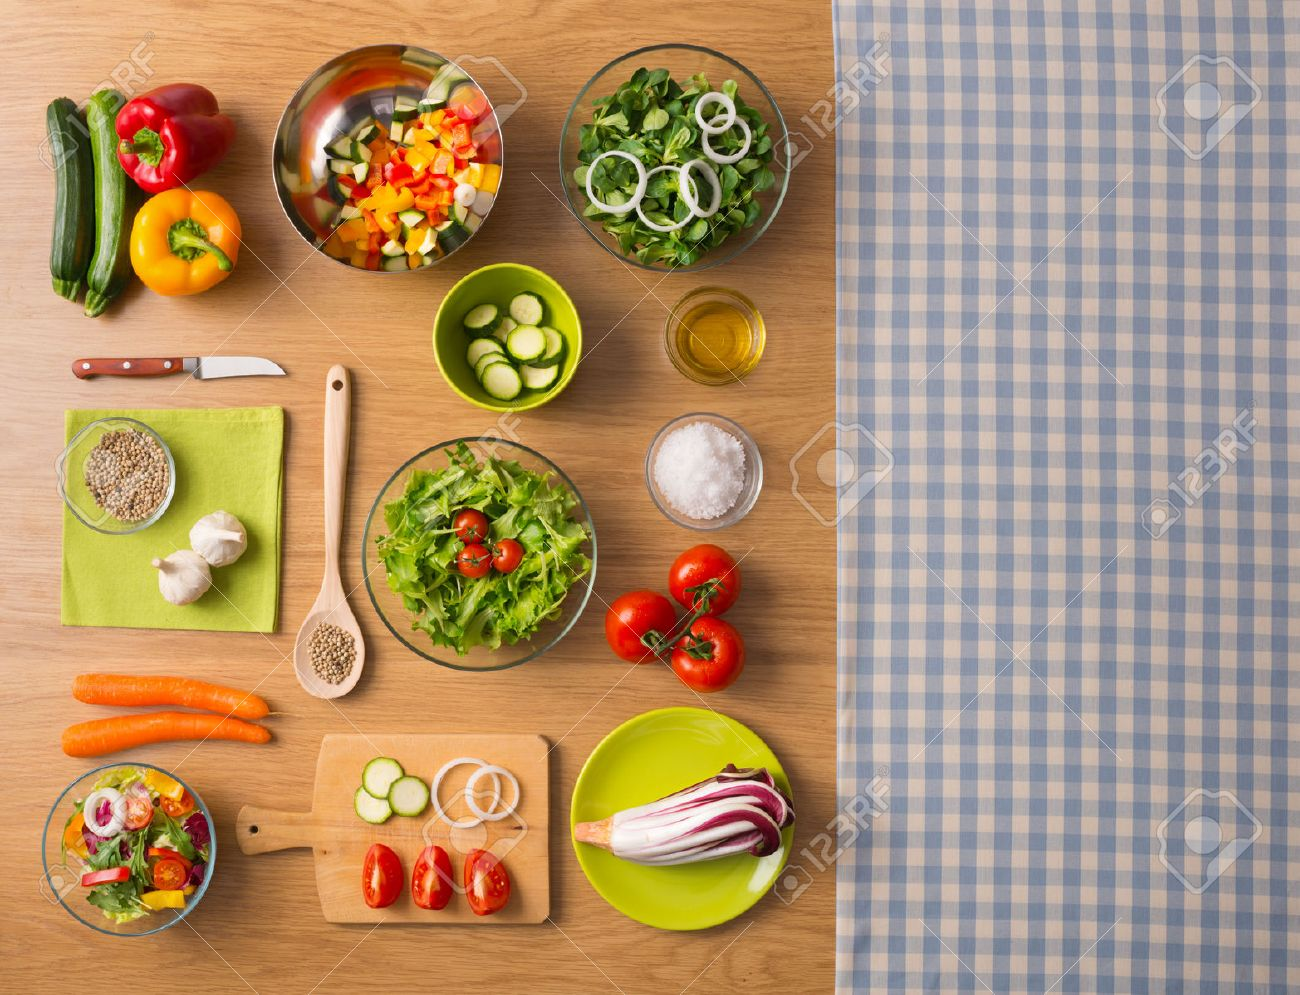 Kitchen table top view - Restaurant Table Top View Healthy Fresh Vegetarian Food On Kitchen Table With Checked Tablecloth On